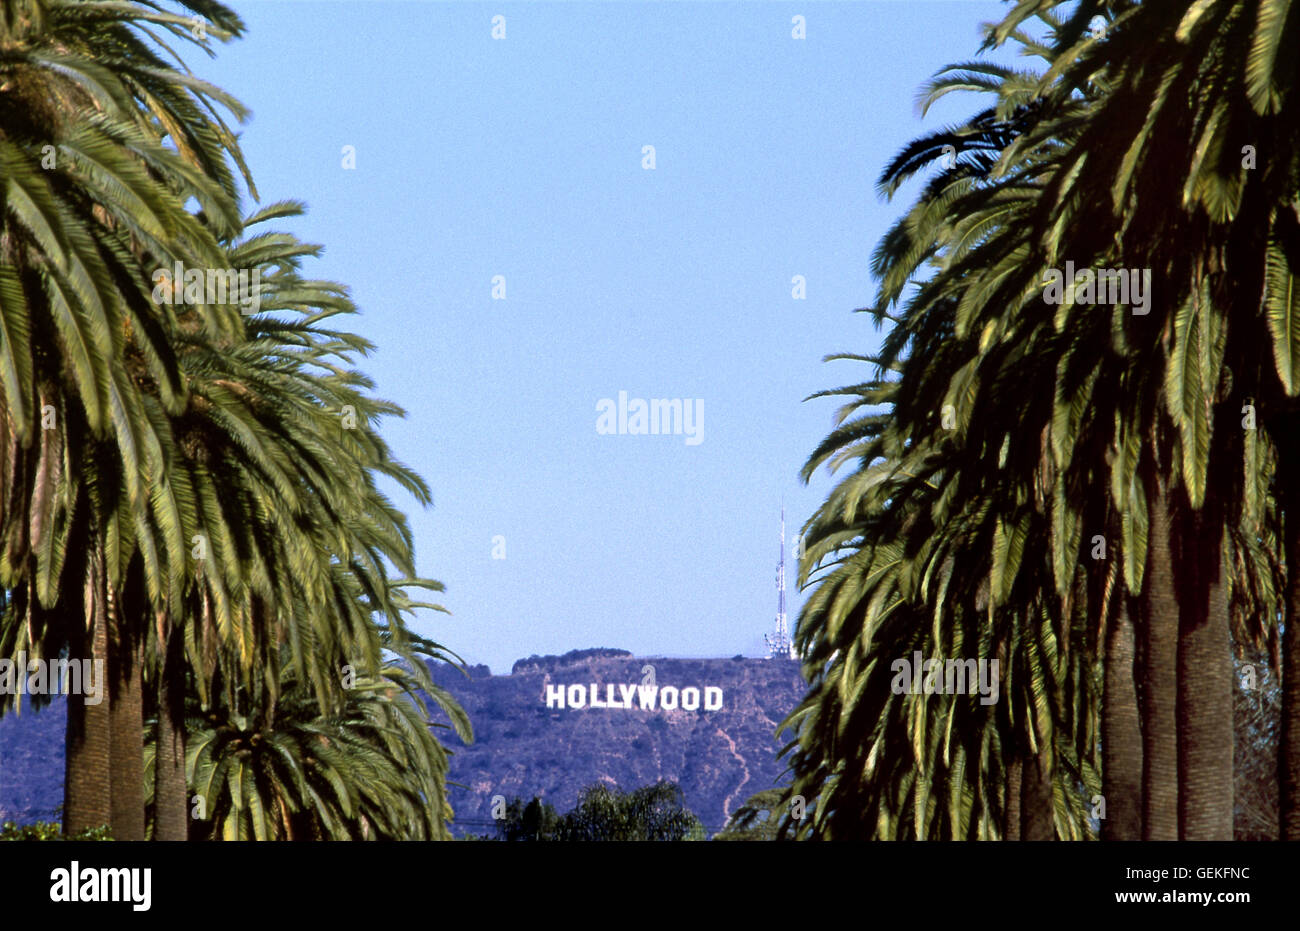 The Iconic Hollywood Sign Viewed Thorough Palm Tree Lined Street